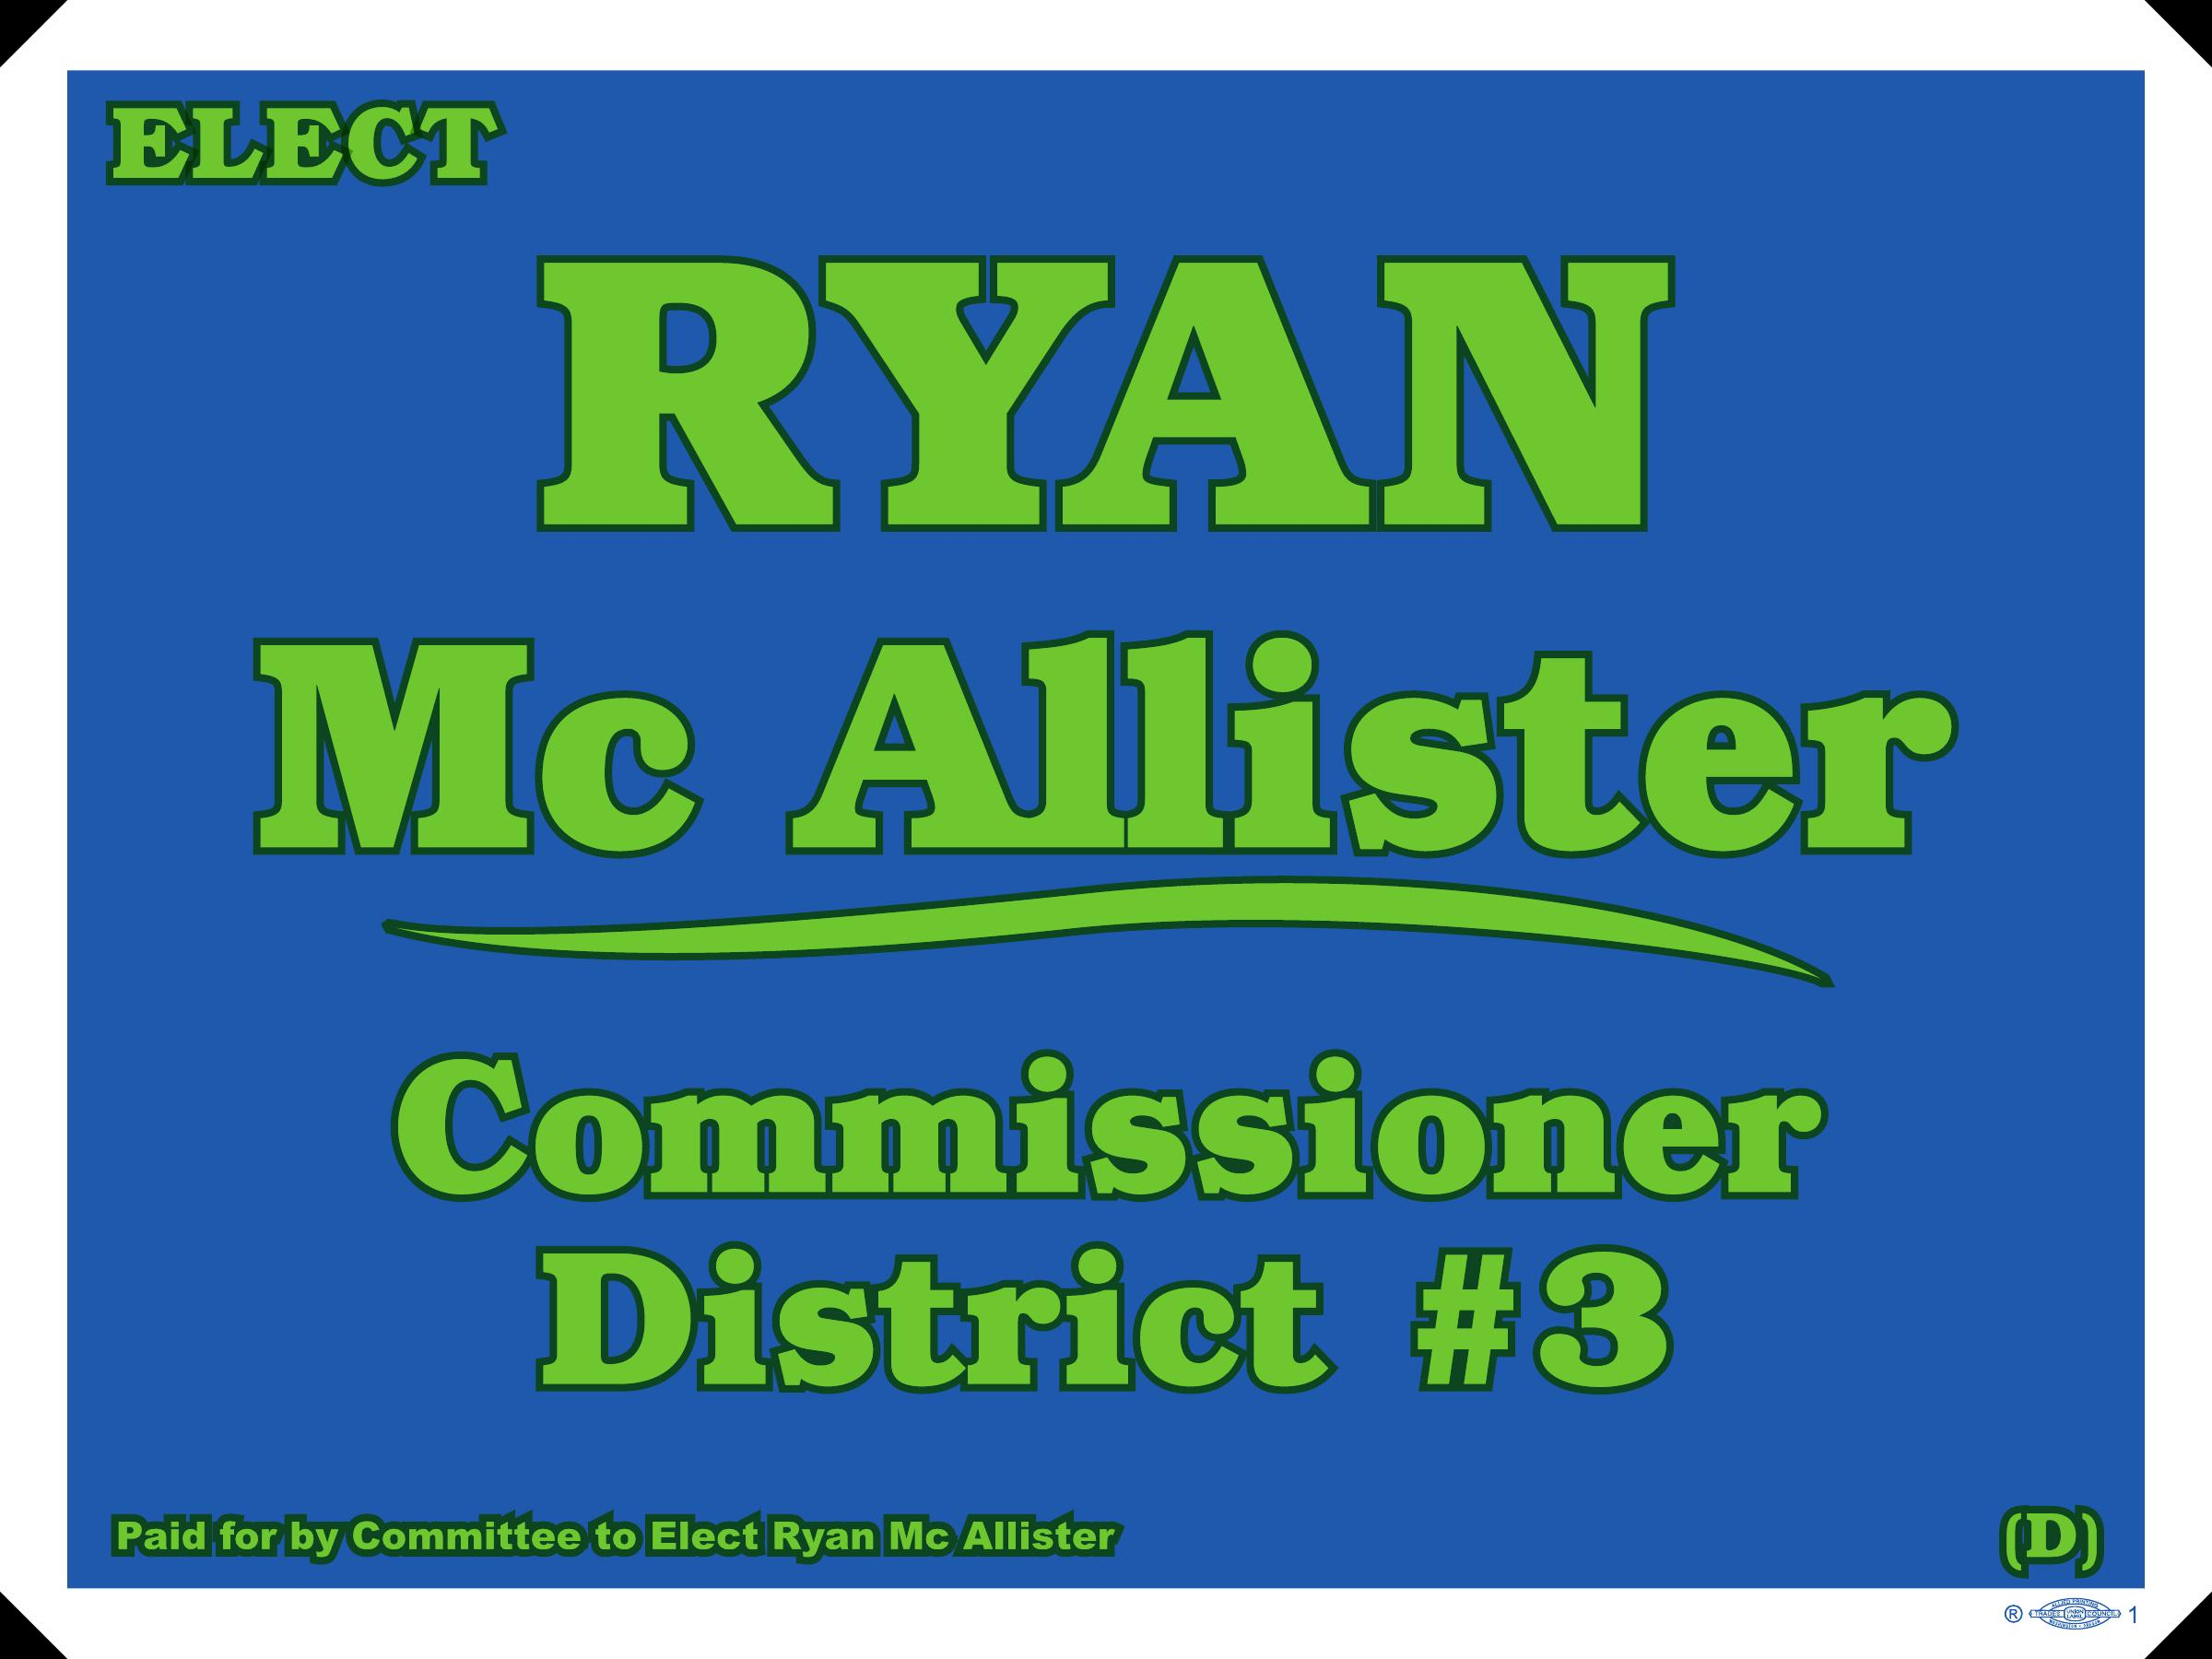 Ryan Mc Allister